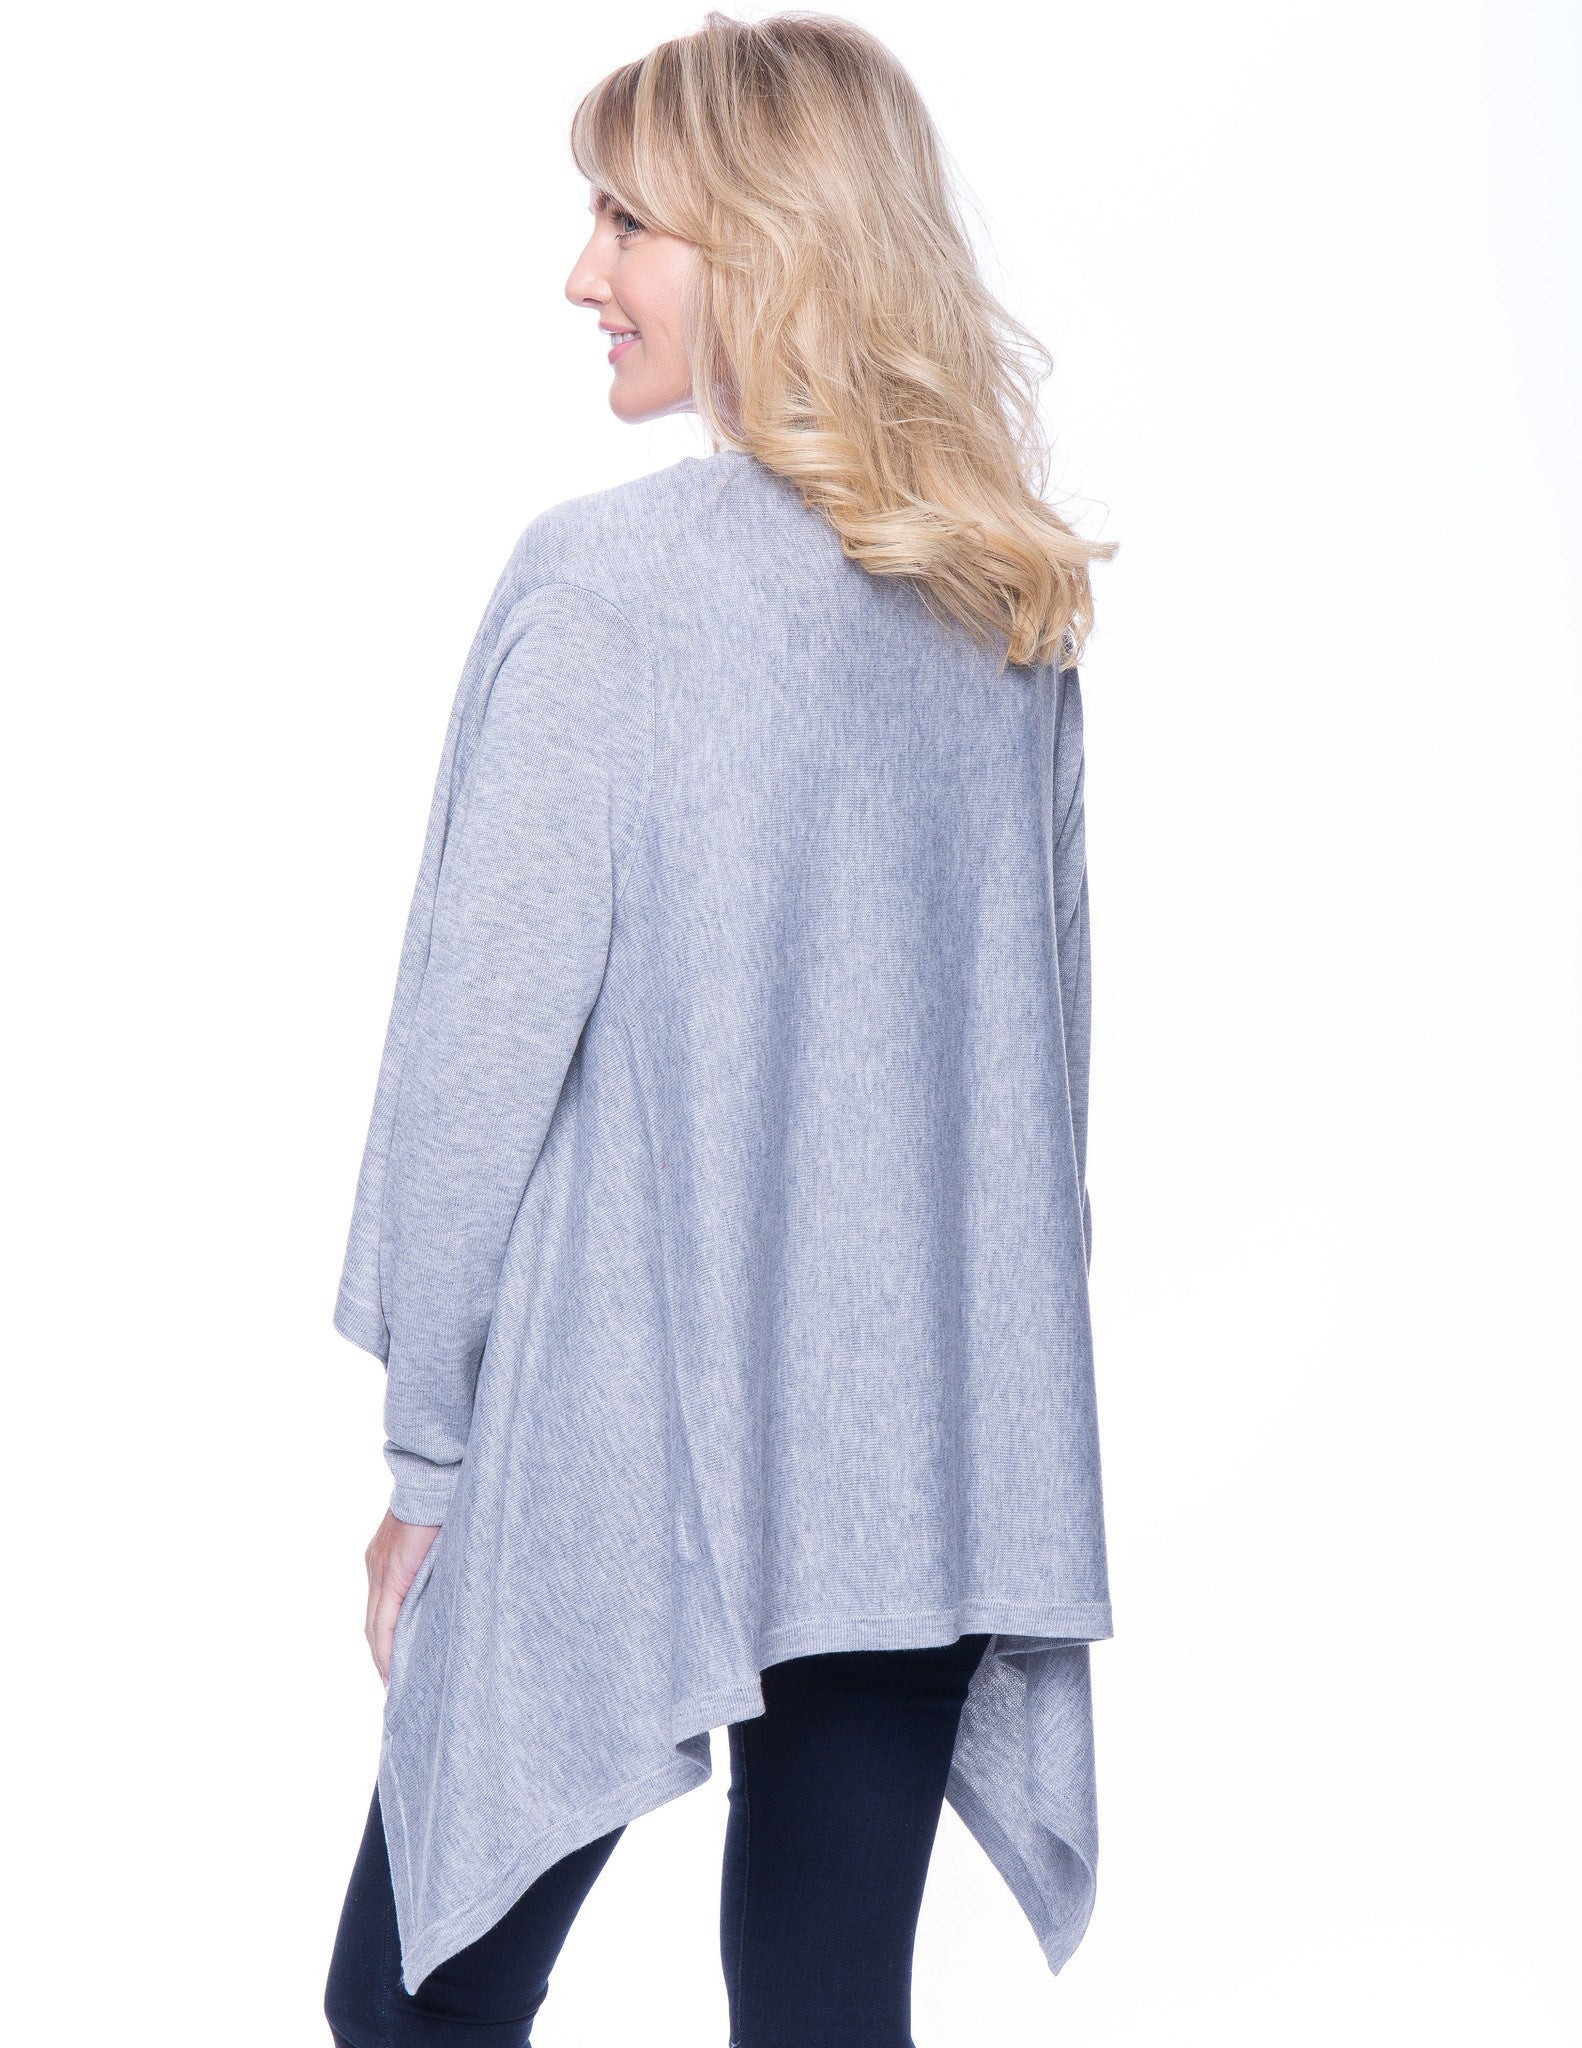 Tocco Reale Women's Wool Blend Open Cardigan - Heather Grey